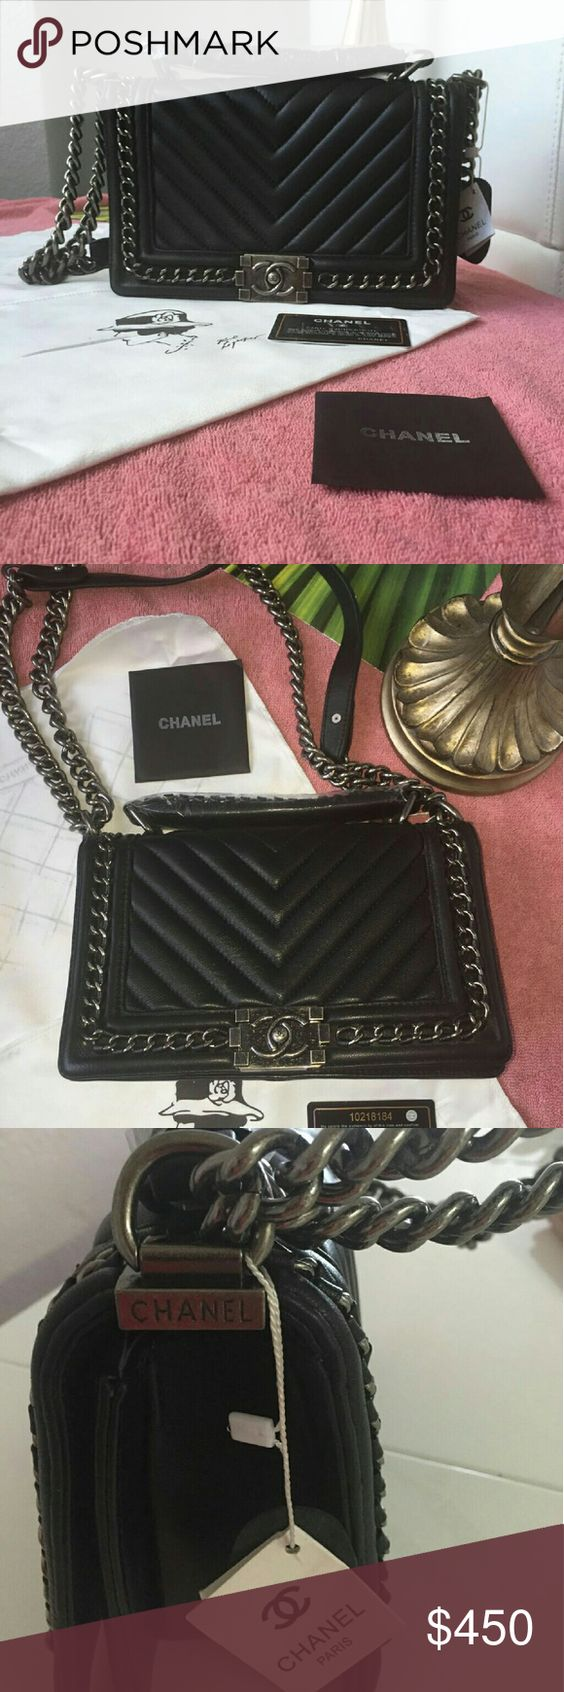 Chanel chevron le boy Never used genuine leather, heavy metal straps, medium size. Comes with everything dust bag, authenticity card and booklet. CHANEL Bags Shoulder Bags